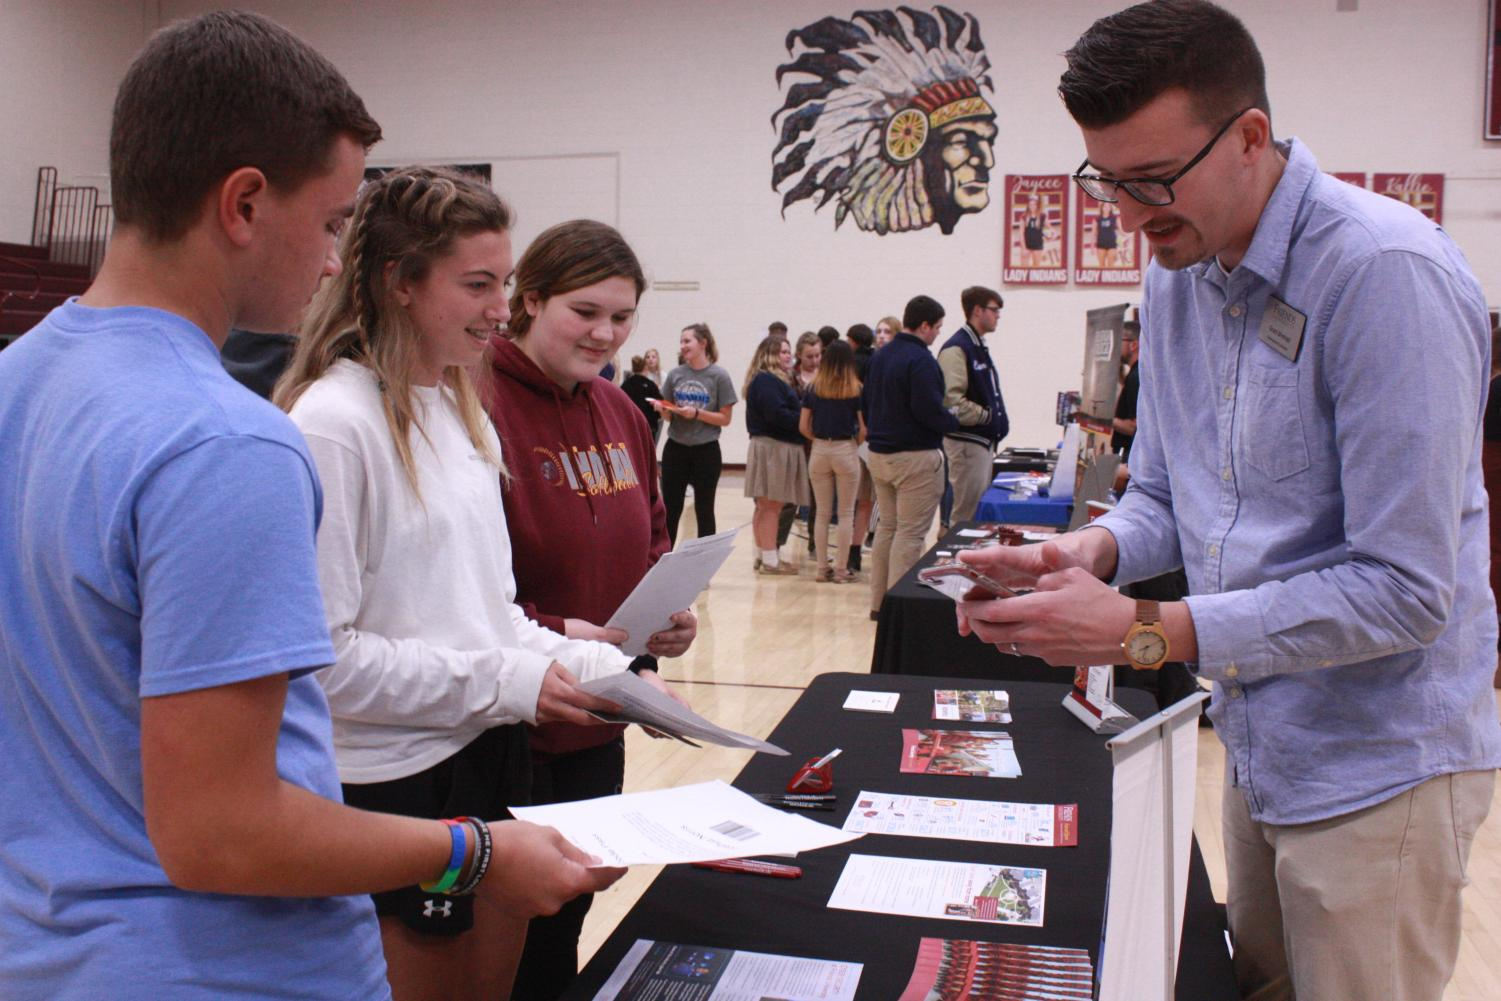 Senior Josh Norris and juniors Maddie Lohmeyer and Kallyn Petz took the College Planning Conference as an opportunity to approach colleges and ask questions.